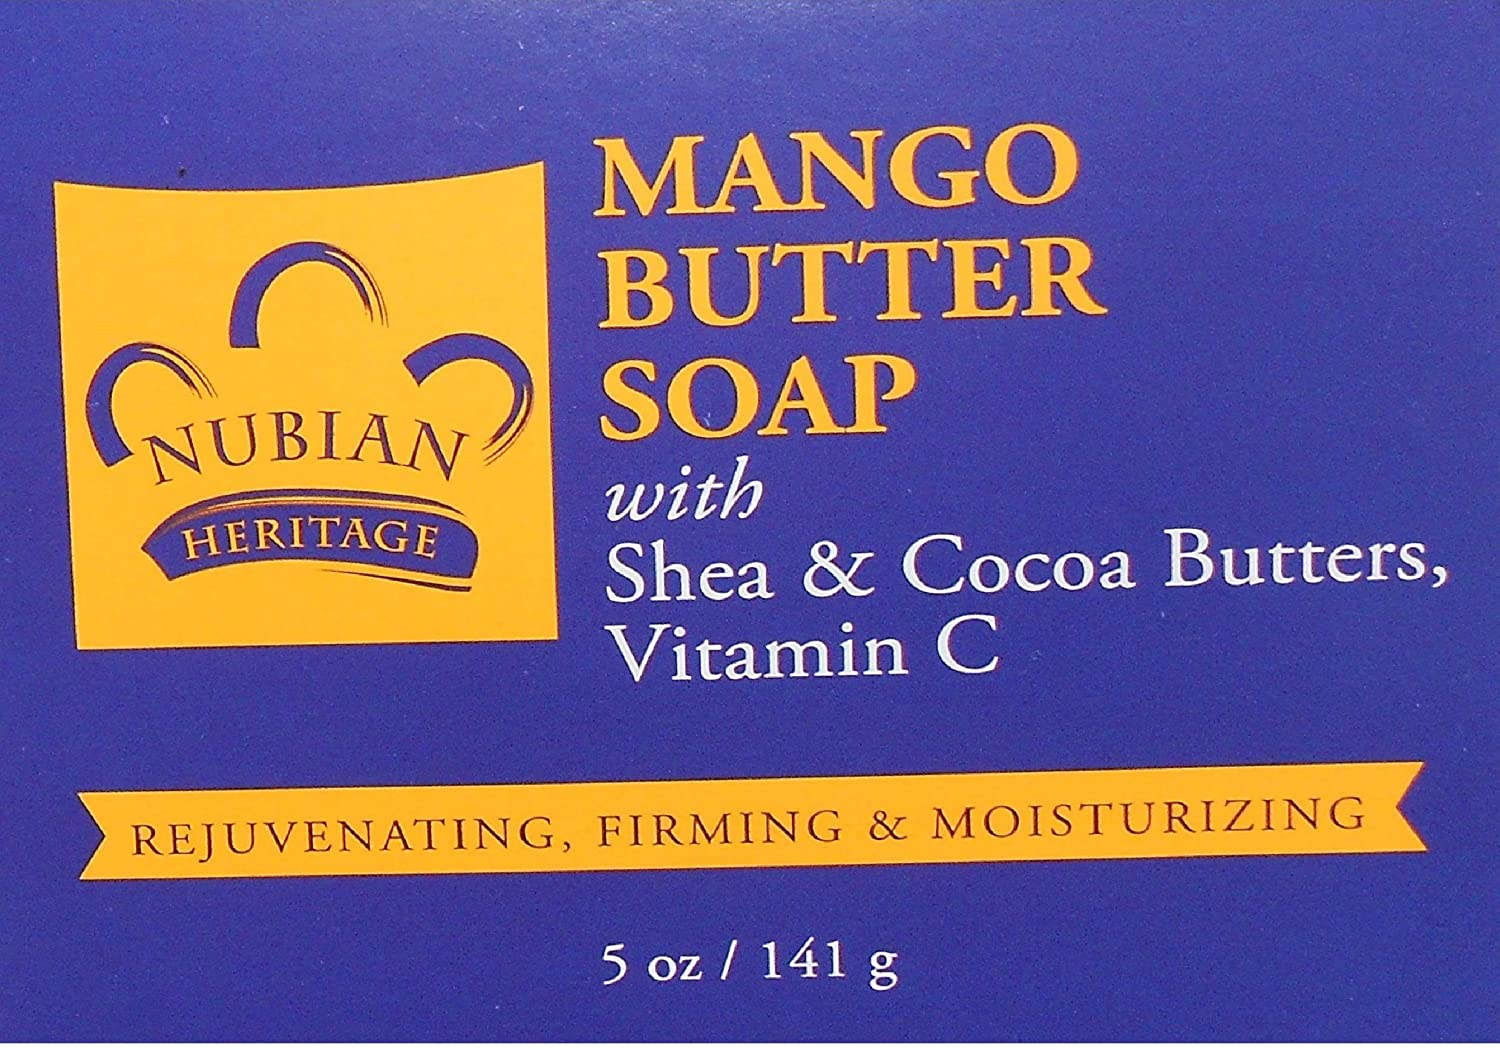 Mango Butter Soap with Shea & CoCoa Butters,Vitamin C